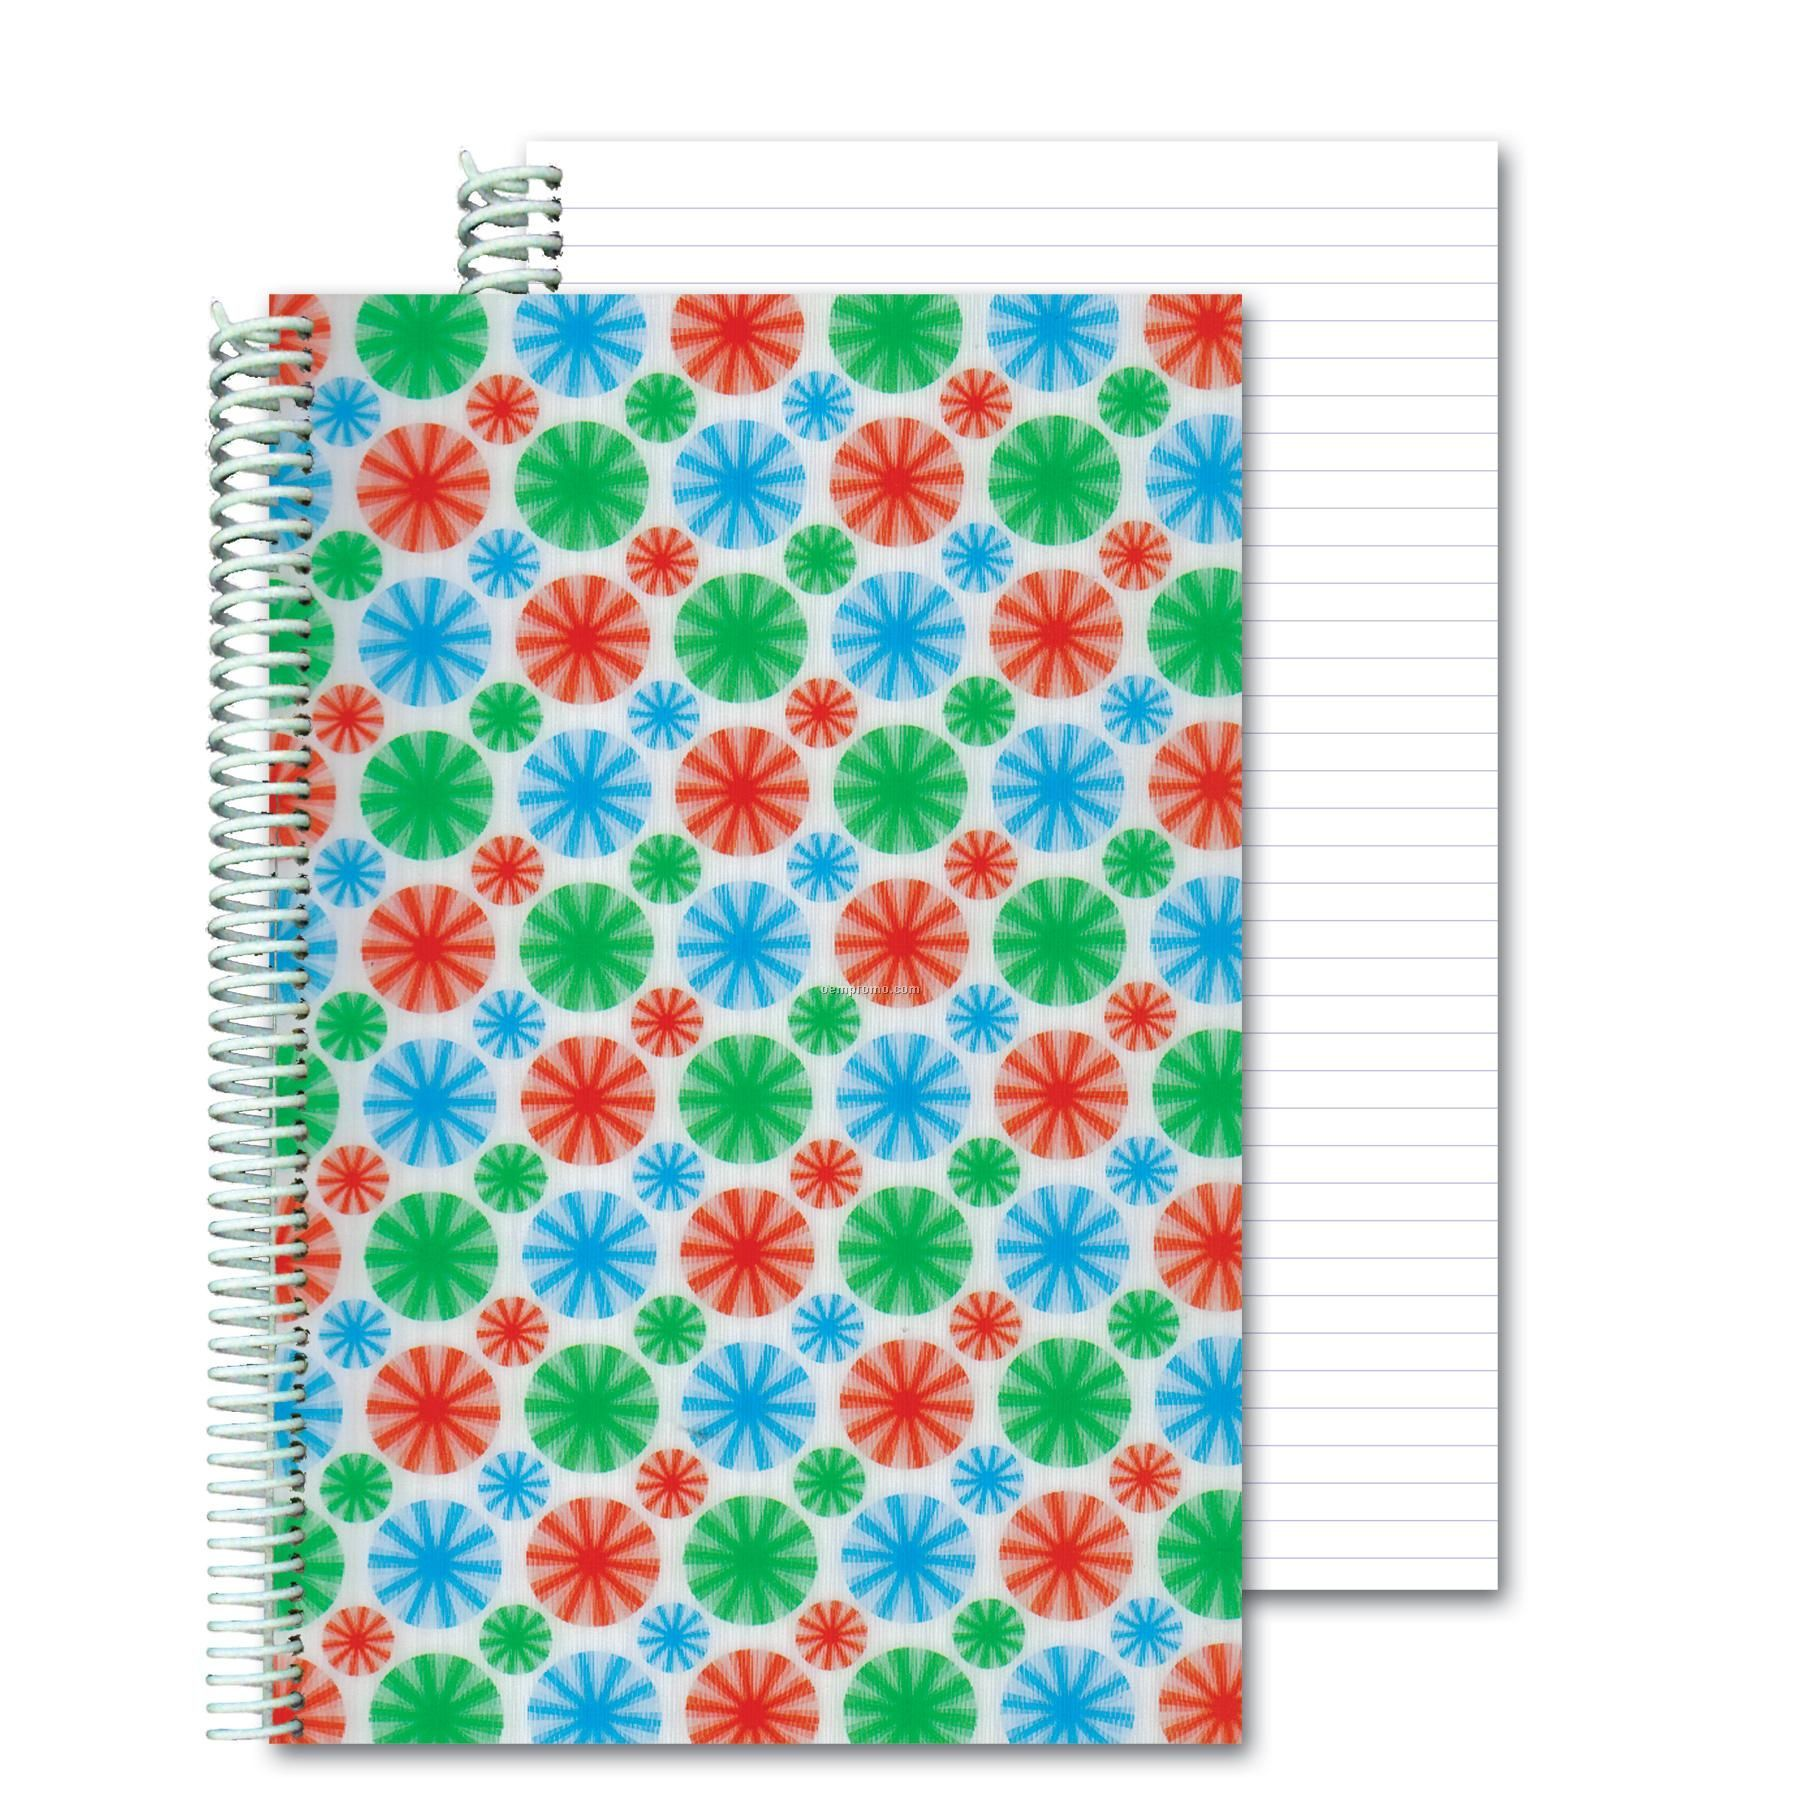 3d Lenticular Notebook Stock/Multi-colored Spinning Wheels (Blanks)